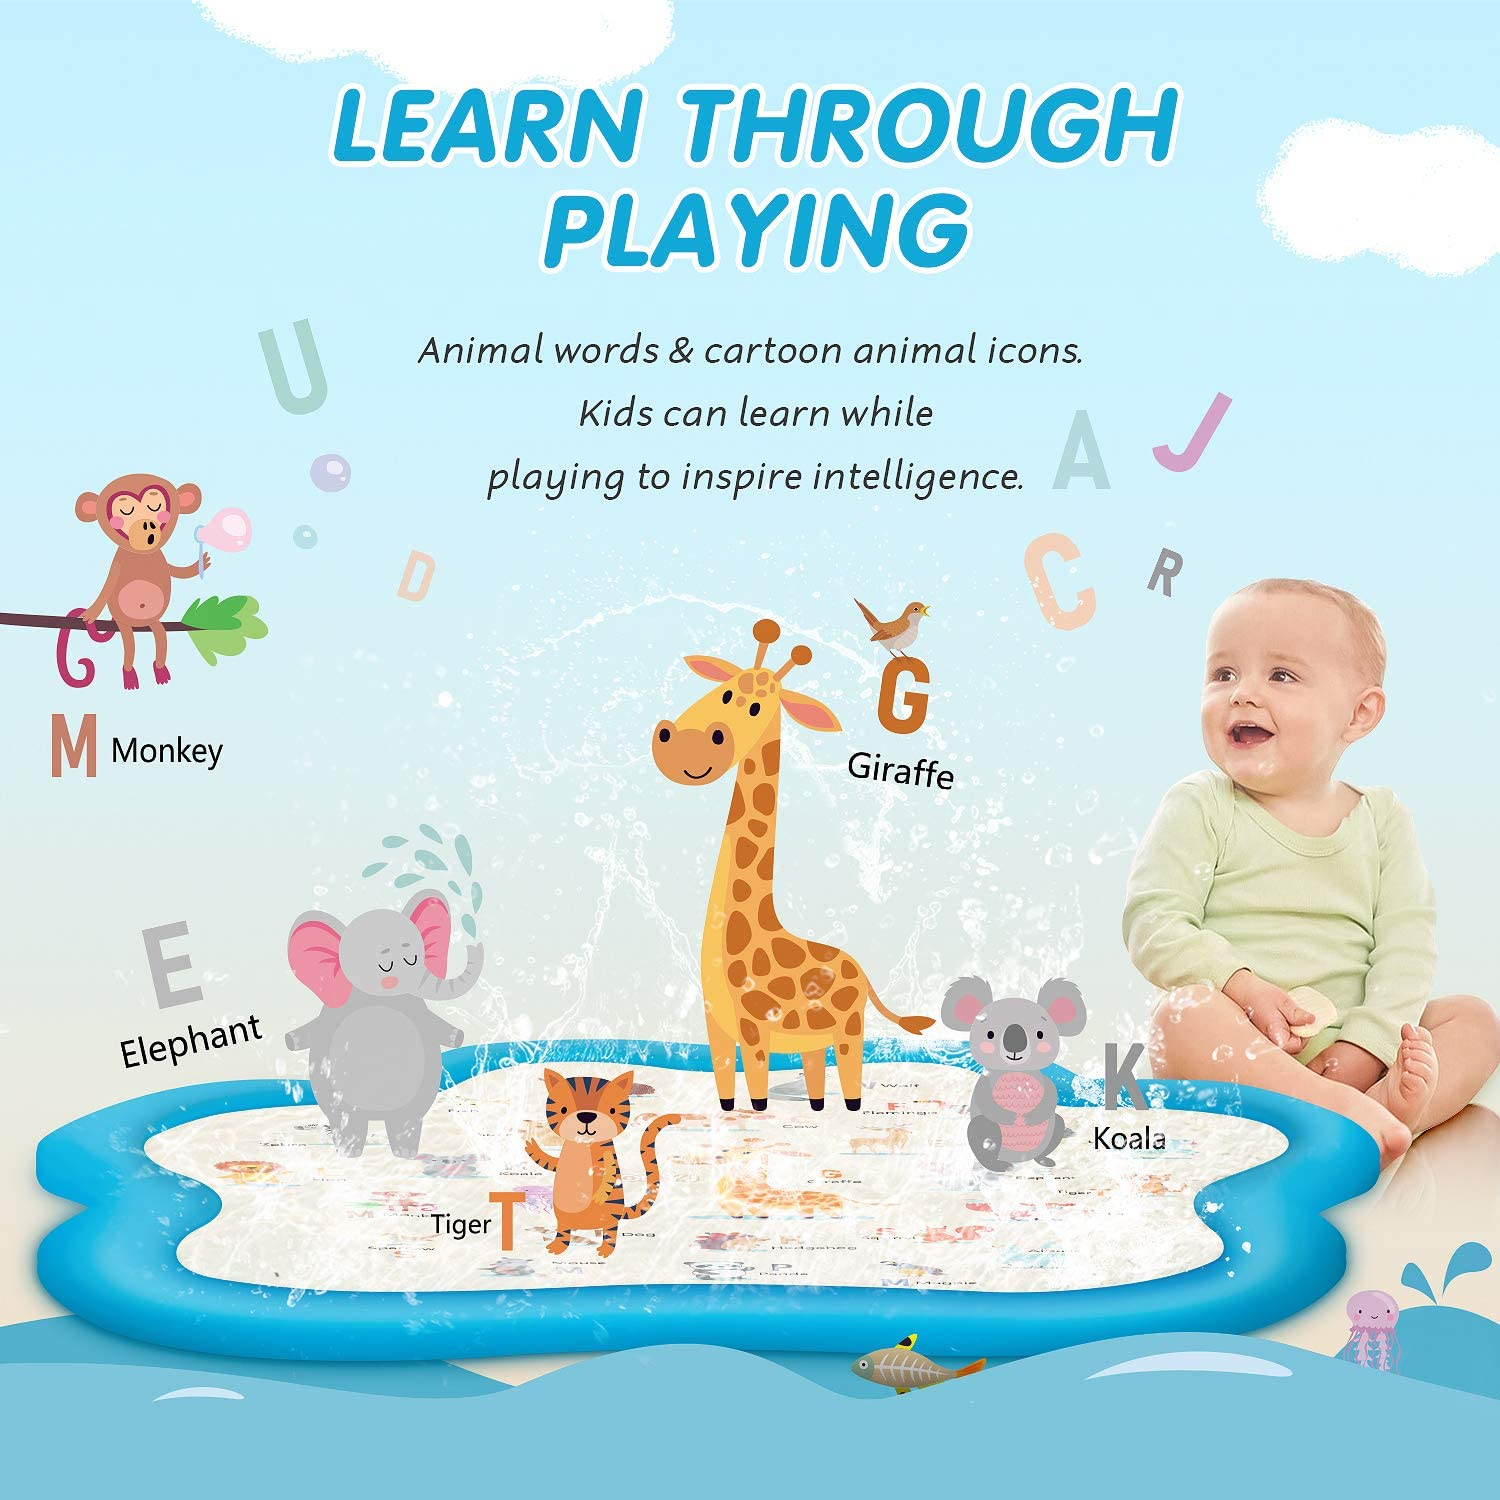 Inflatable Water Toys for 1-12 Year Old Boys Girls Children JONYJ Splash Pad 77 Sprinkler for Kids and Toddlers Outdoor Wading Pool Baby Splash Play Mat for Learning